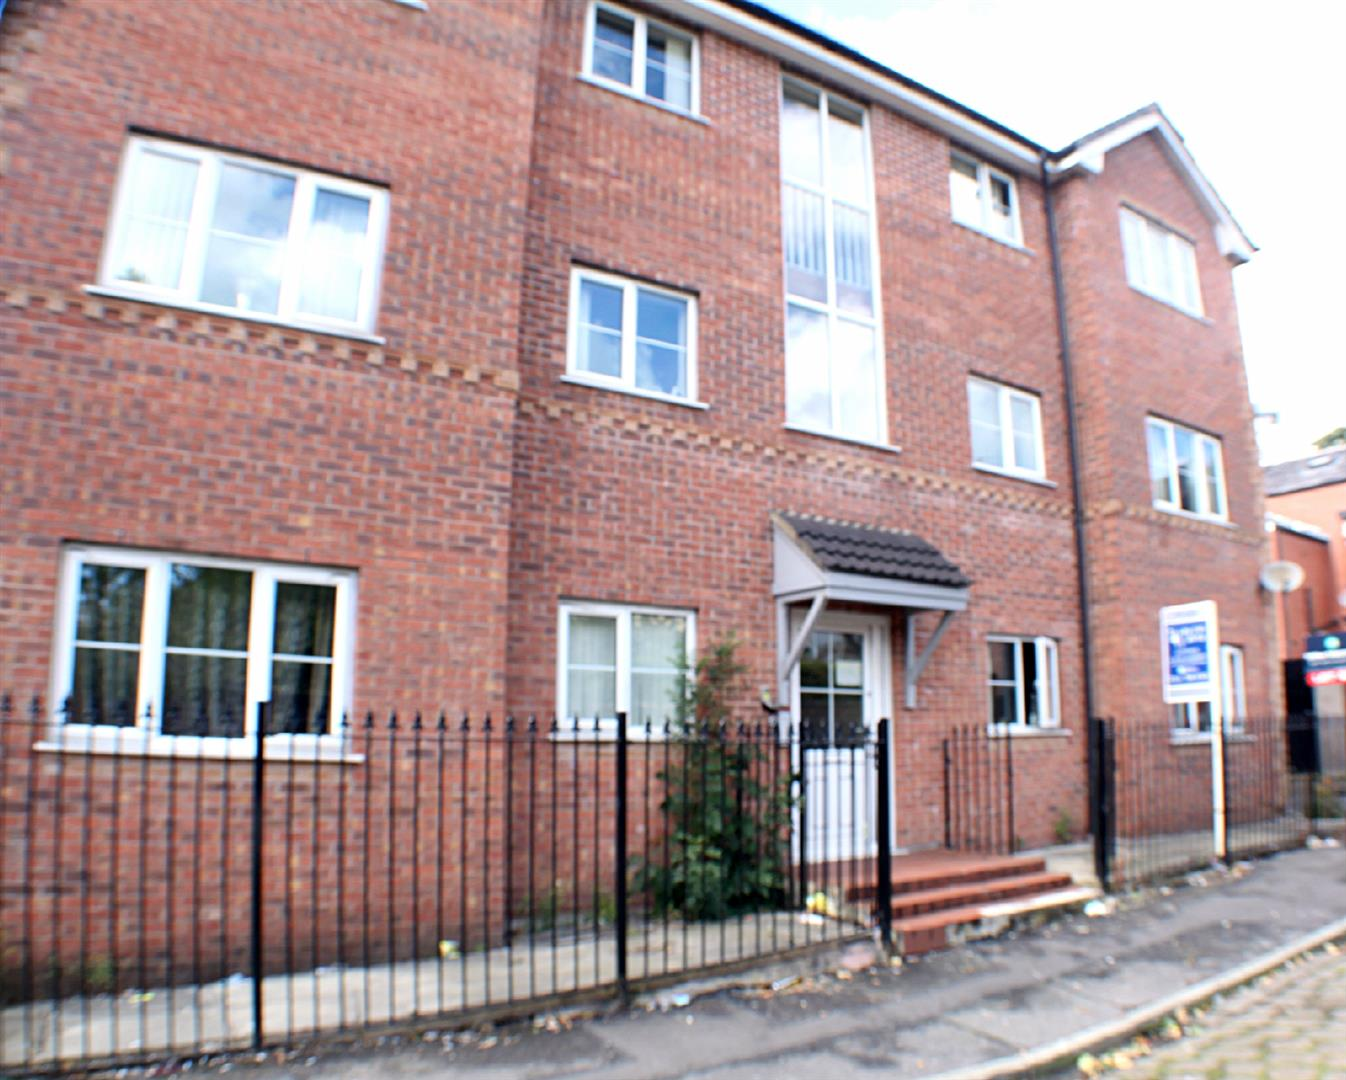 12 Bedrooms Flat for sale in Gresham St, Bolton